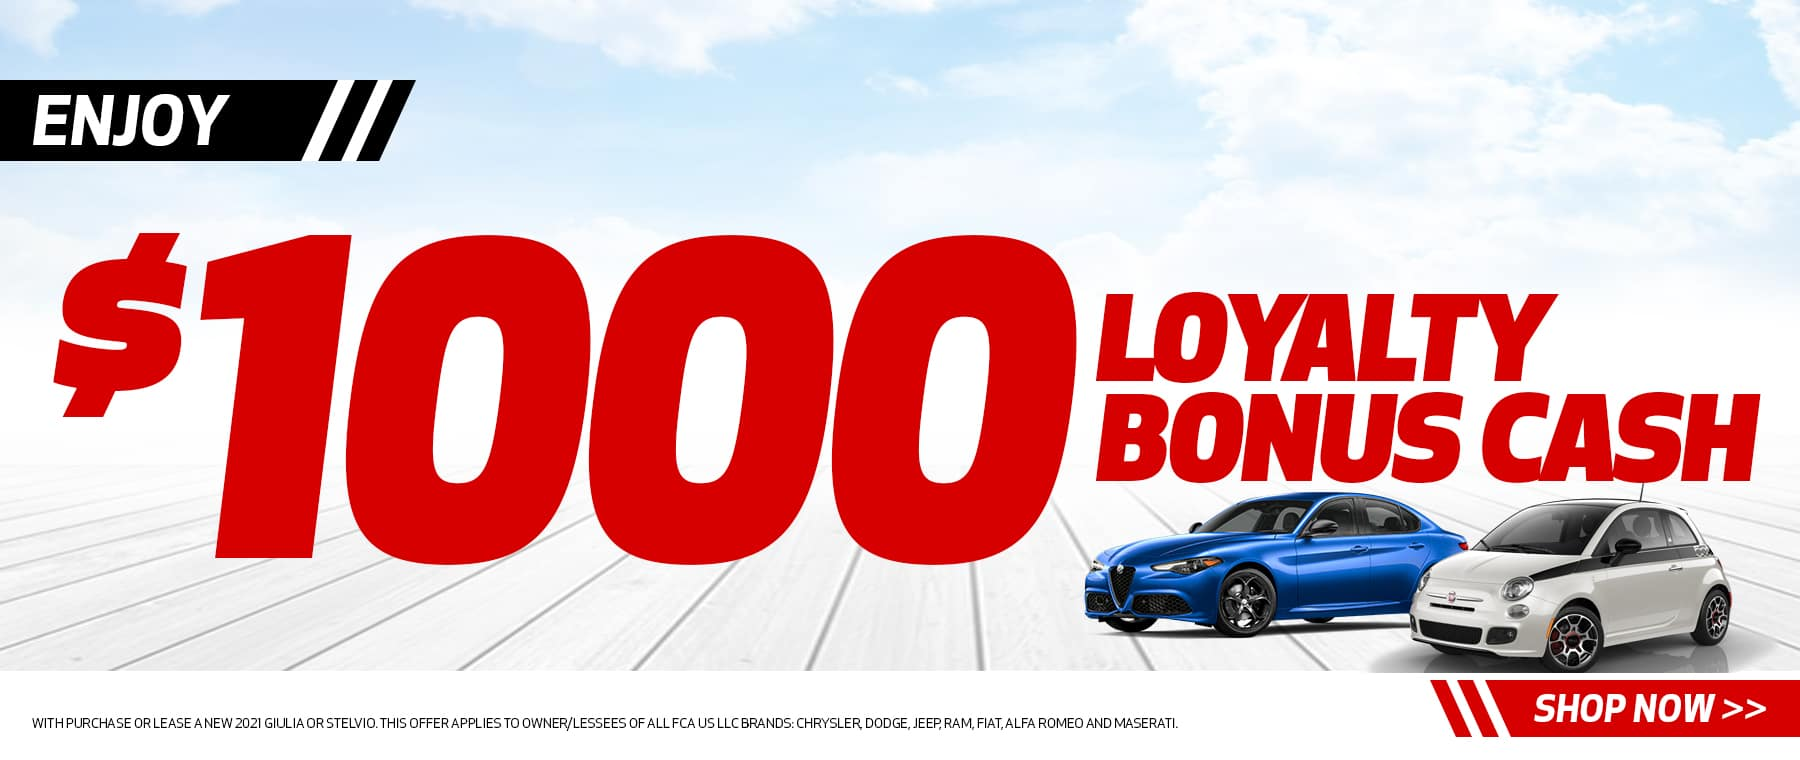 ENJOY $1000 LOYALTY BONUS CASH Disclaimer: With purchase or lease a new 2021 Giulia or Stelvio. This offer applies to owner/lessees of all FCA US LLC Brands: Chrysler, Dodge, Jeep, Ram, Fiat, Alfa Romeo and Maserati.